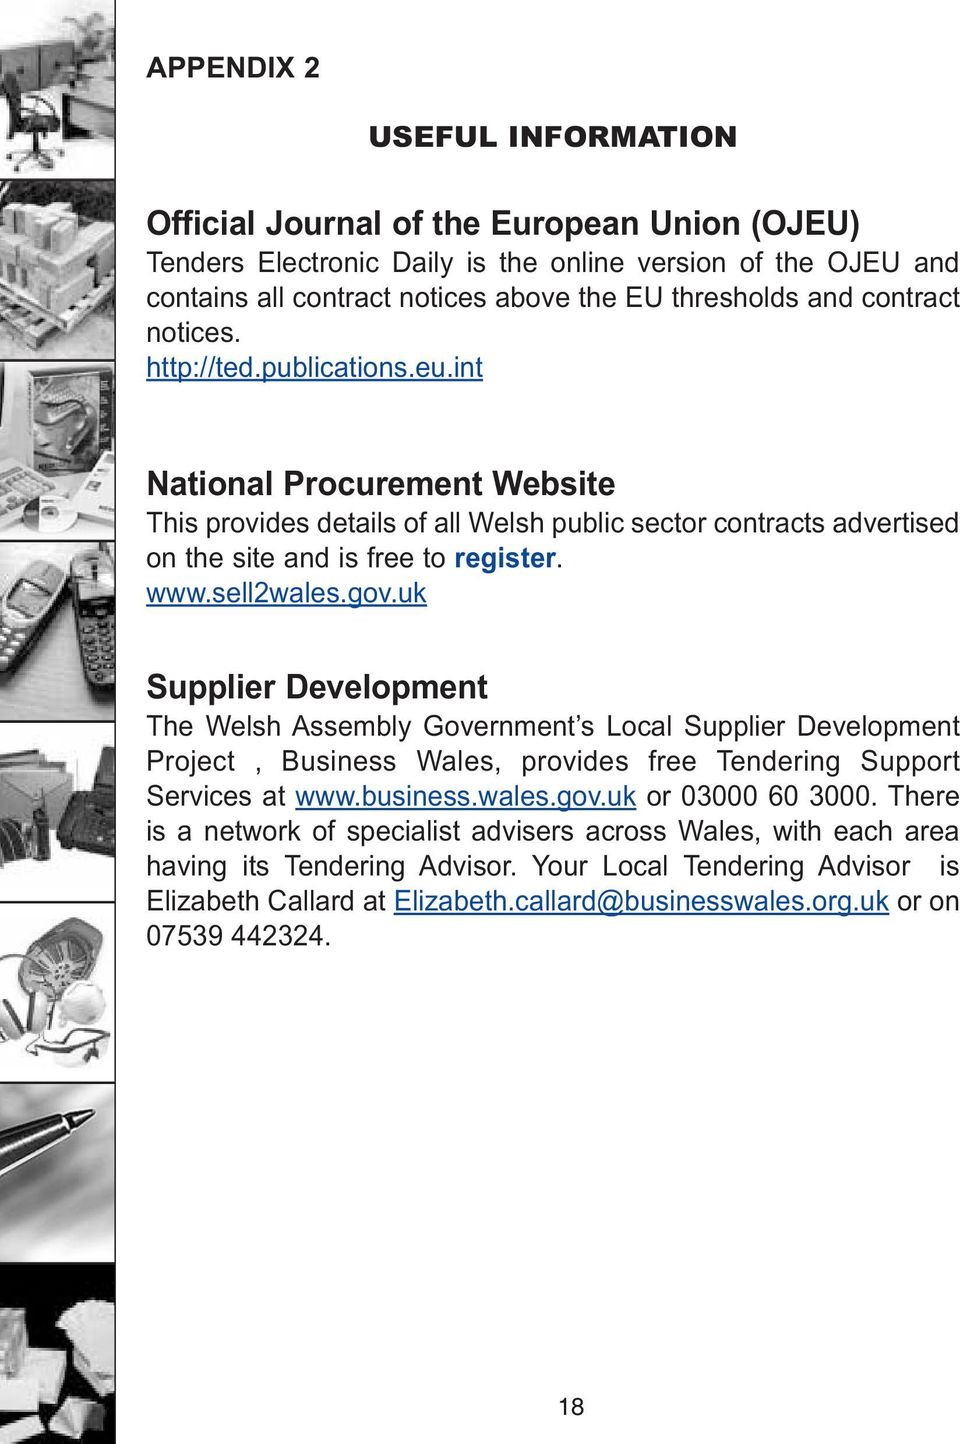 gov.uk Supplier Development The Welsh Assembly Government s Local Supplier Development Project, Business Wales, provides free Tendering Support Services at www.business.wales.gov.uk or 03000 60 3000.